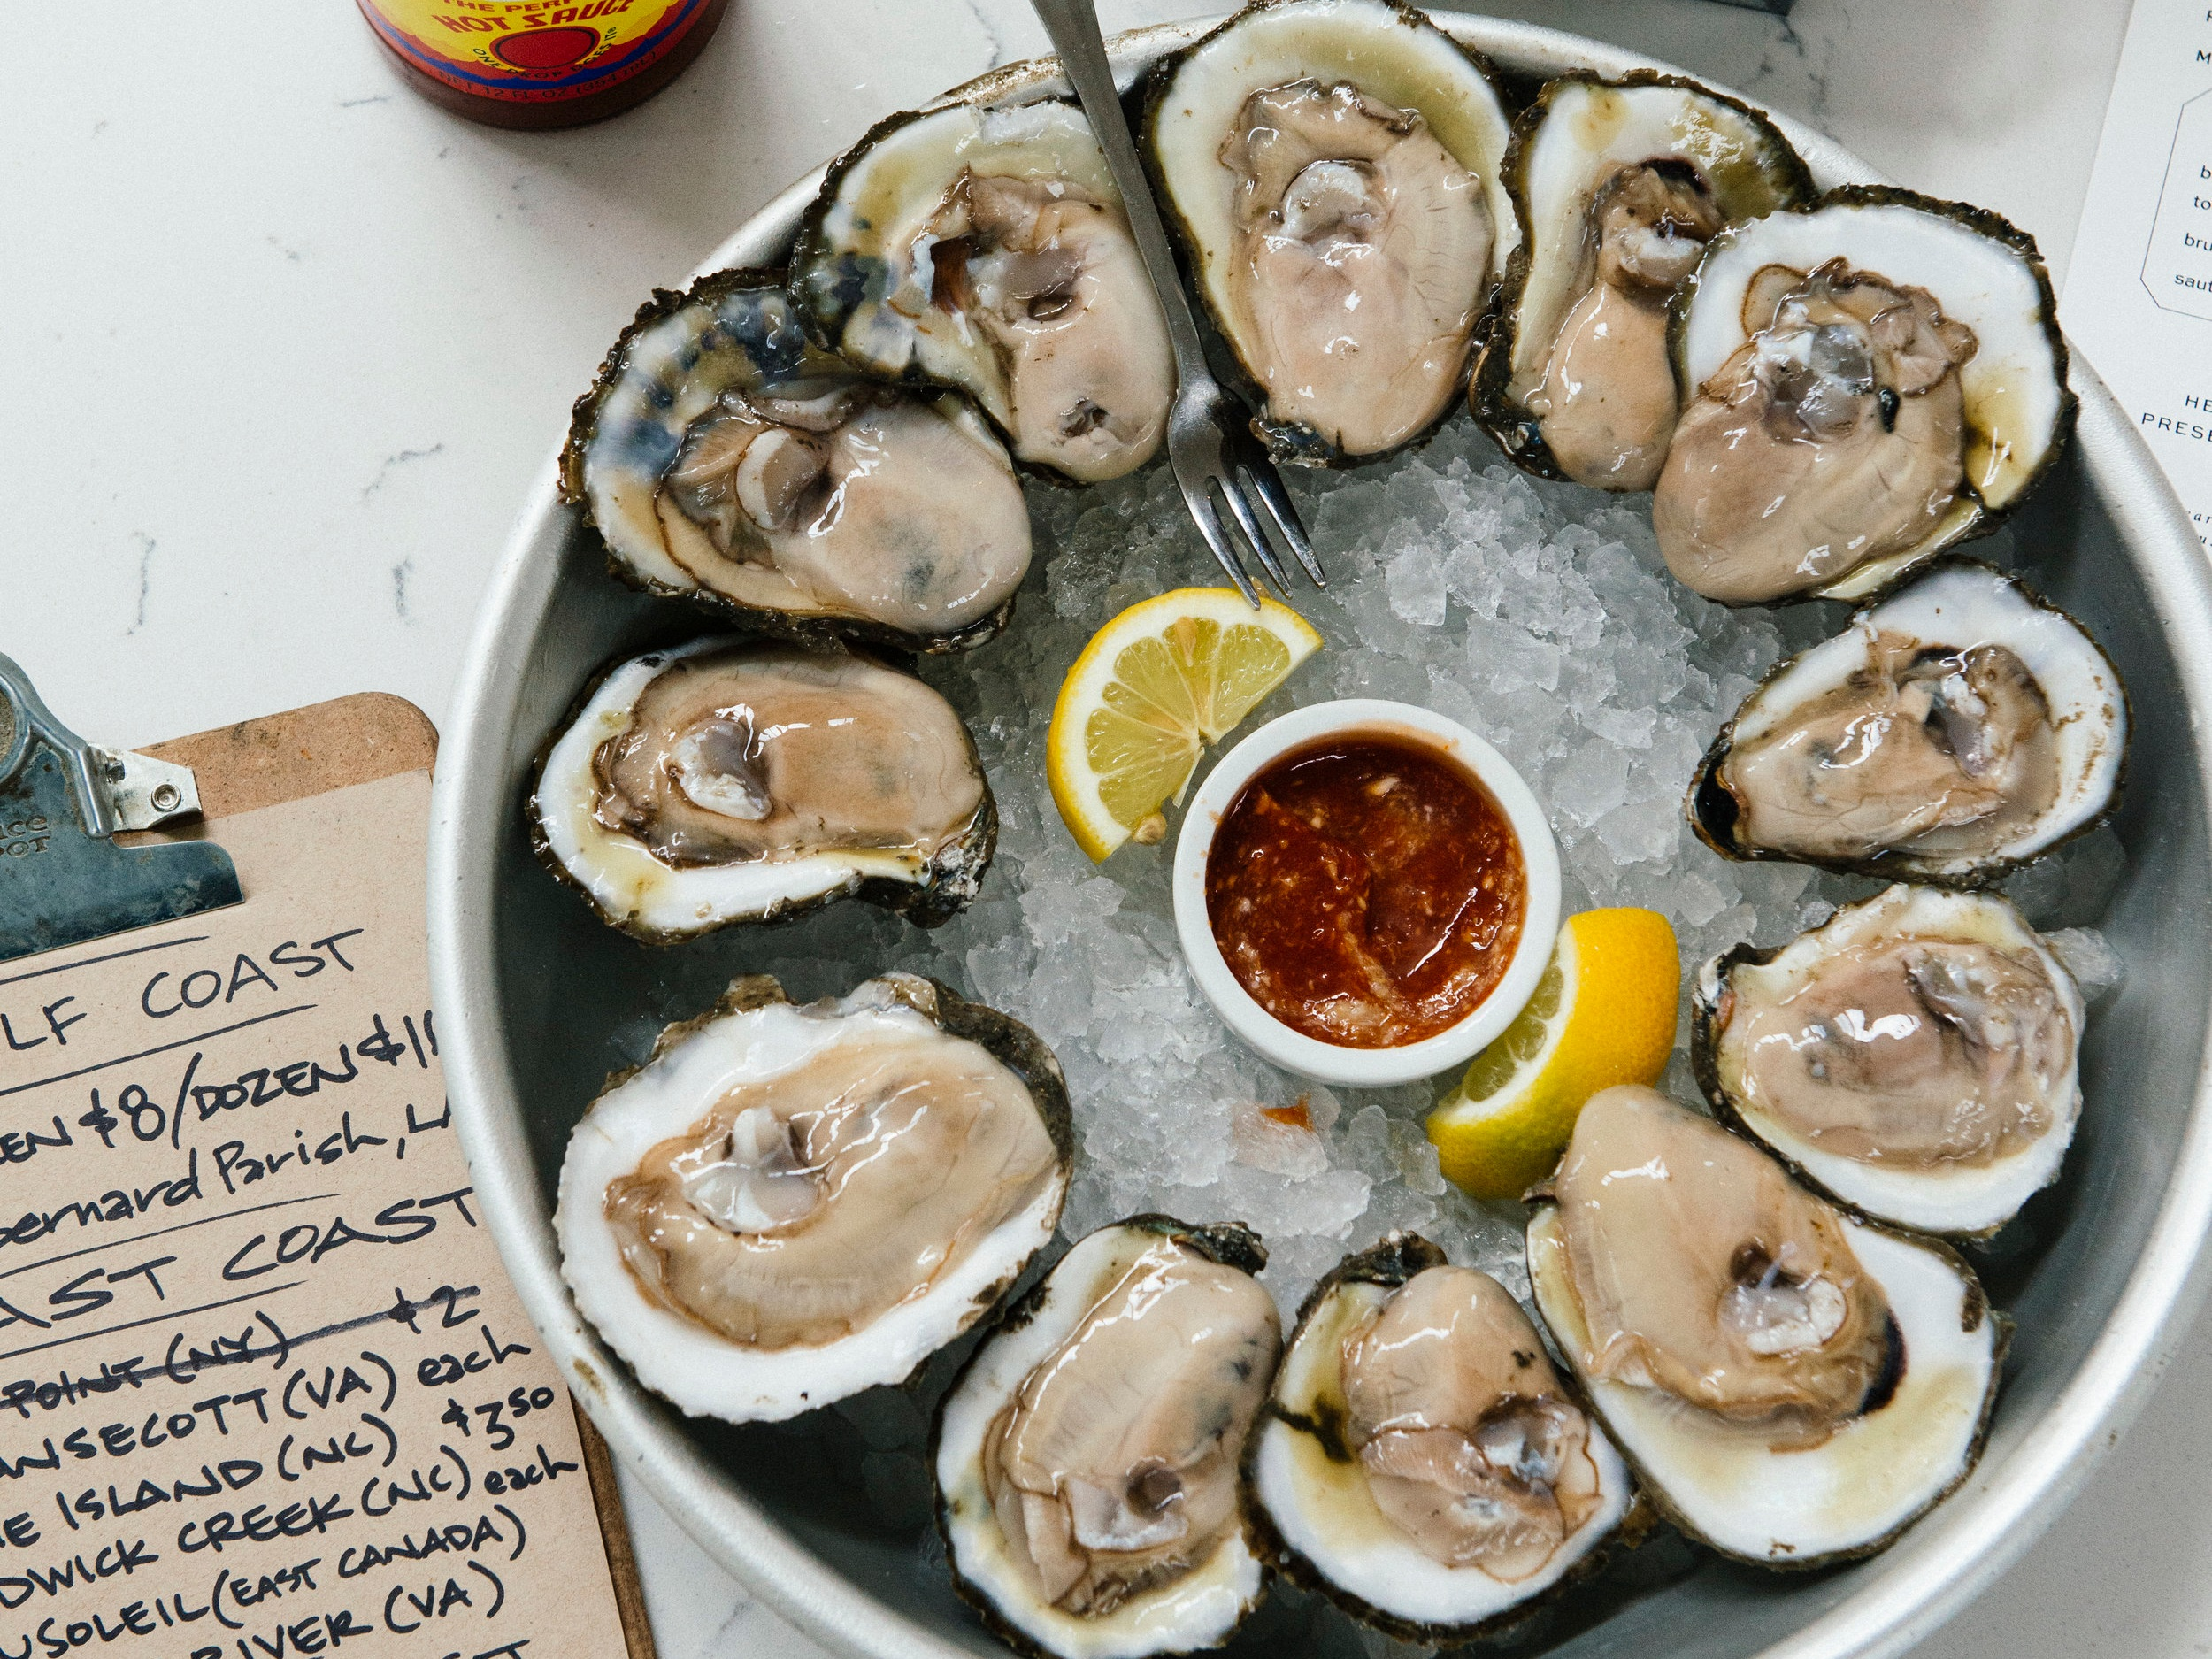 destinations - (when the going gets tough, the tough get going…preferably, someplace with oysters.)